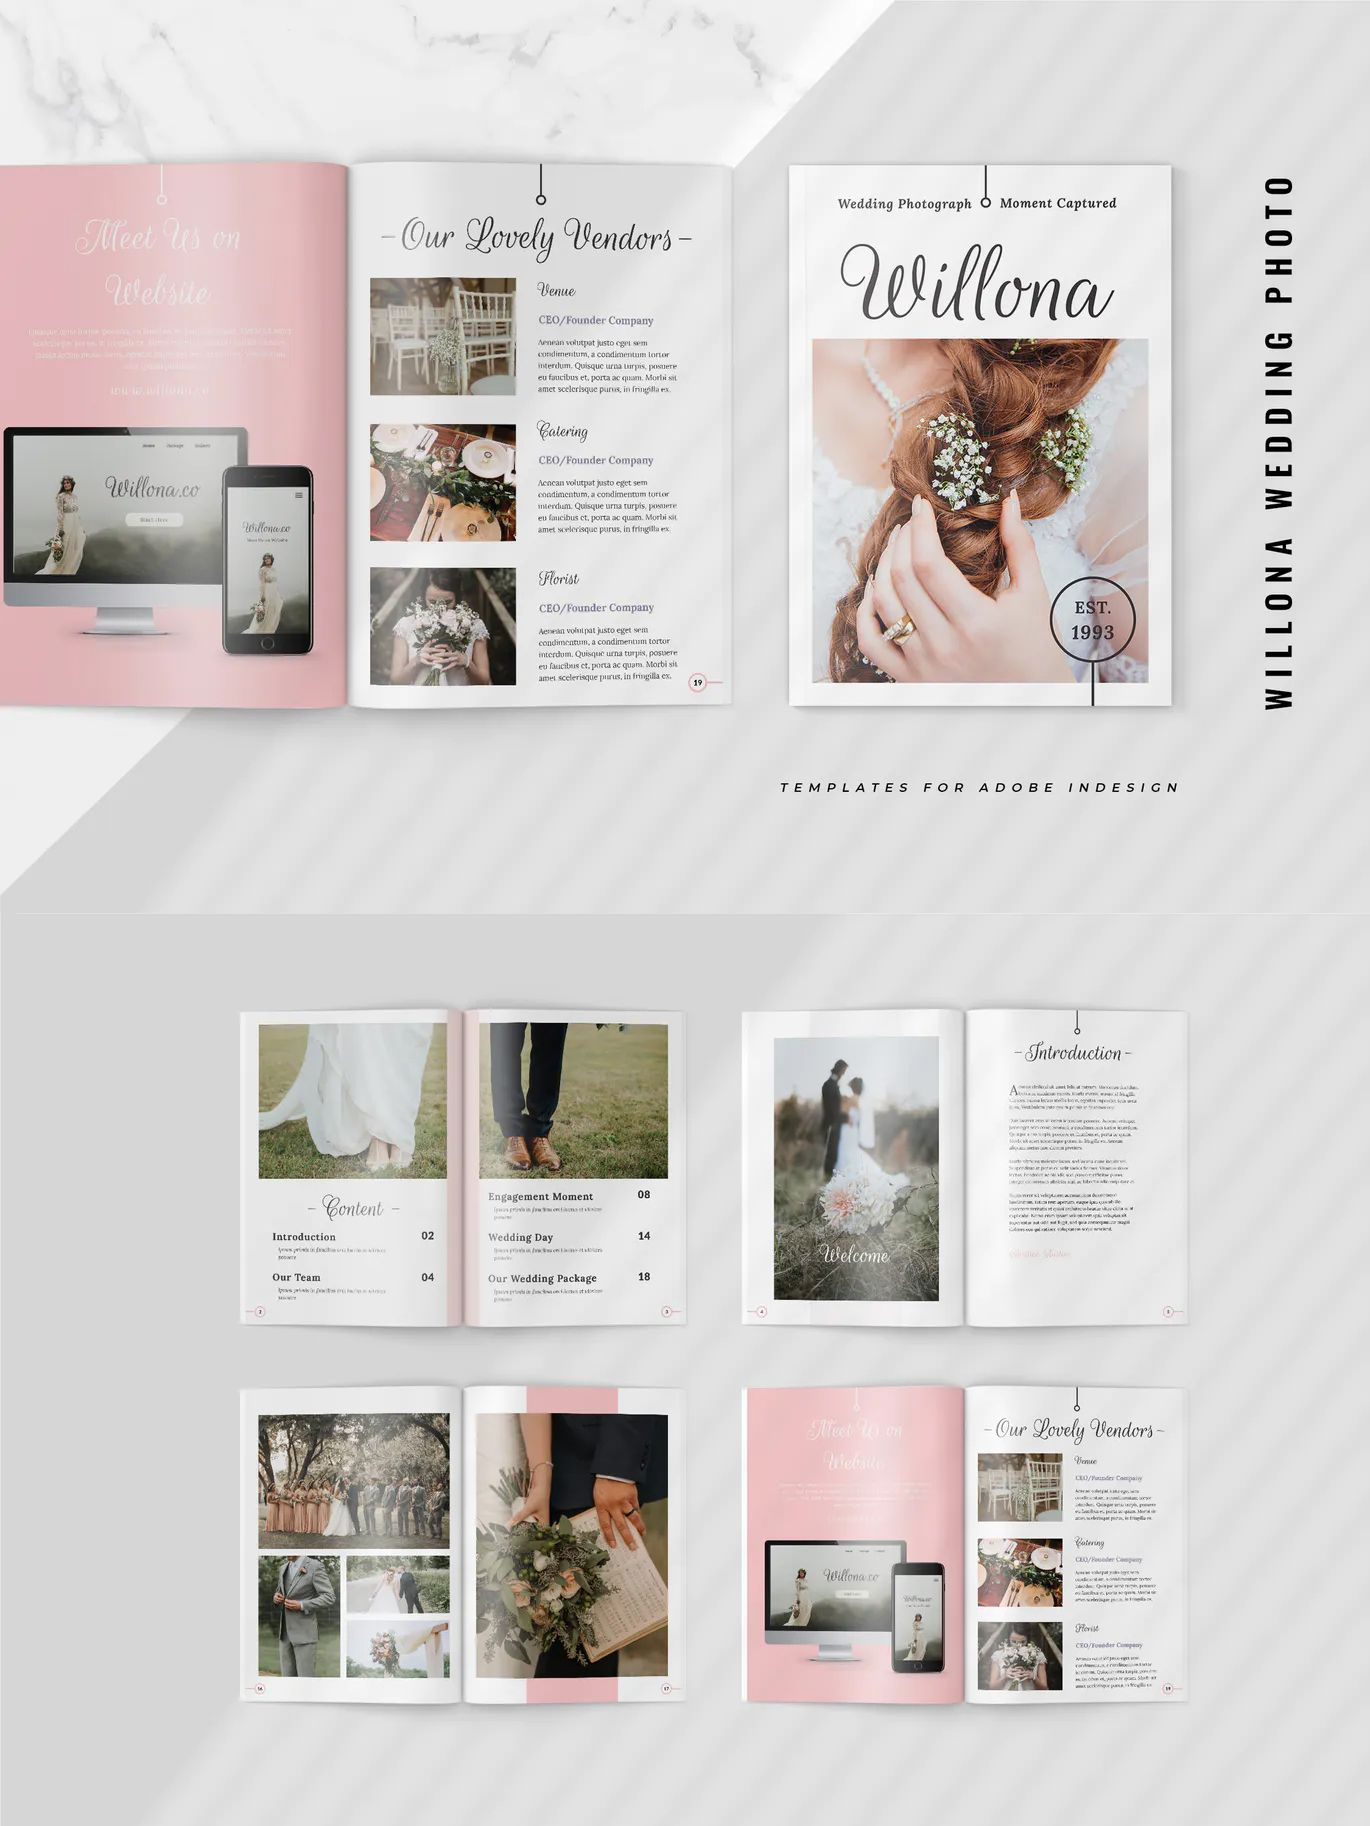 Wedding Photography Pricing Guide Brochure Template Indesign